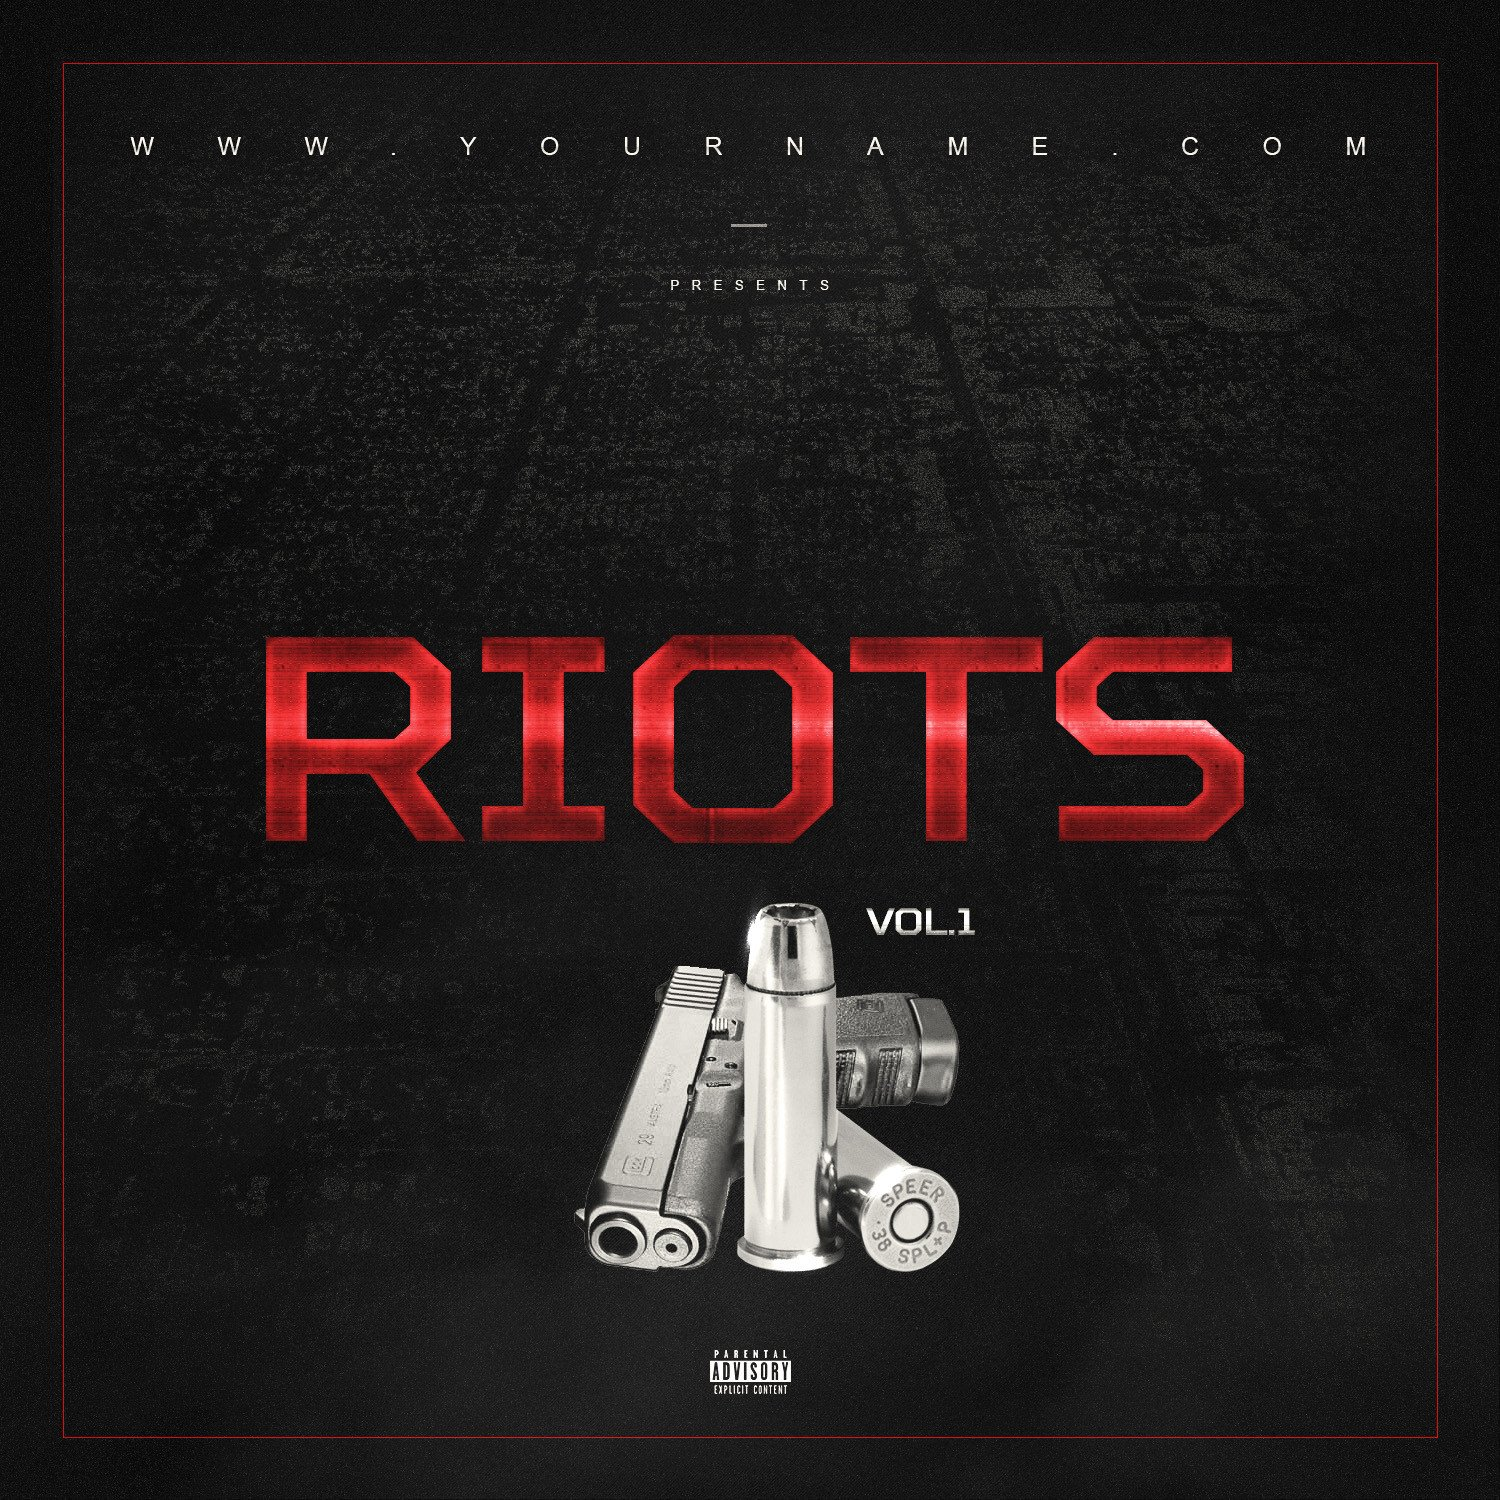 Free Mixtape Cover Templates Riots Mixtape Cover Template Vms